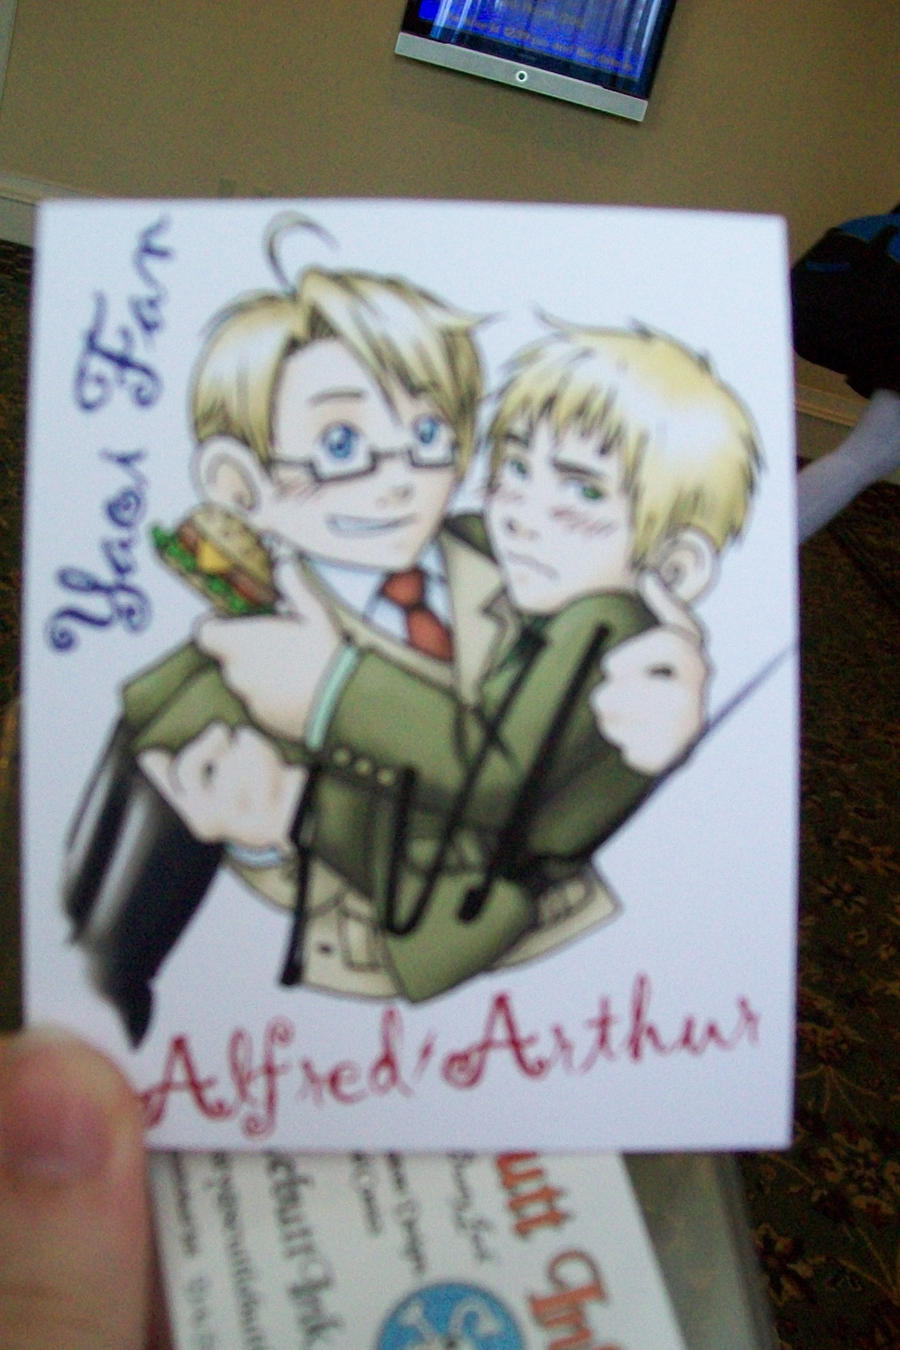 Eric Vale approves of UK x US by American-Anime on DeviantArt